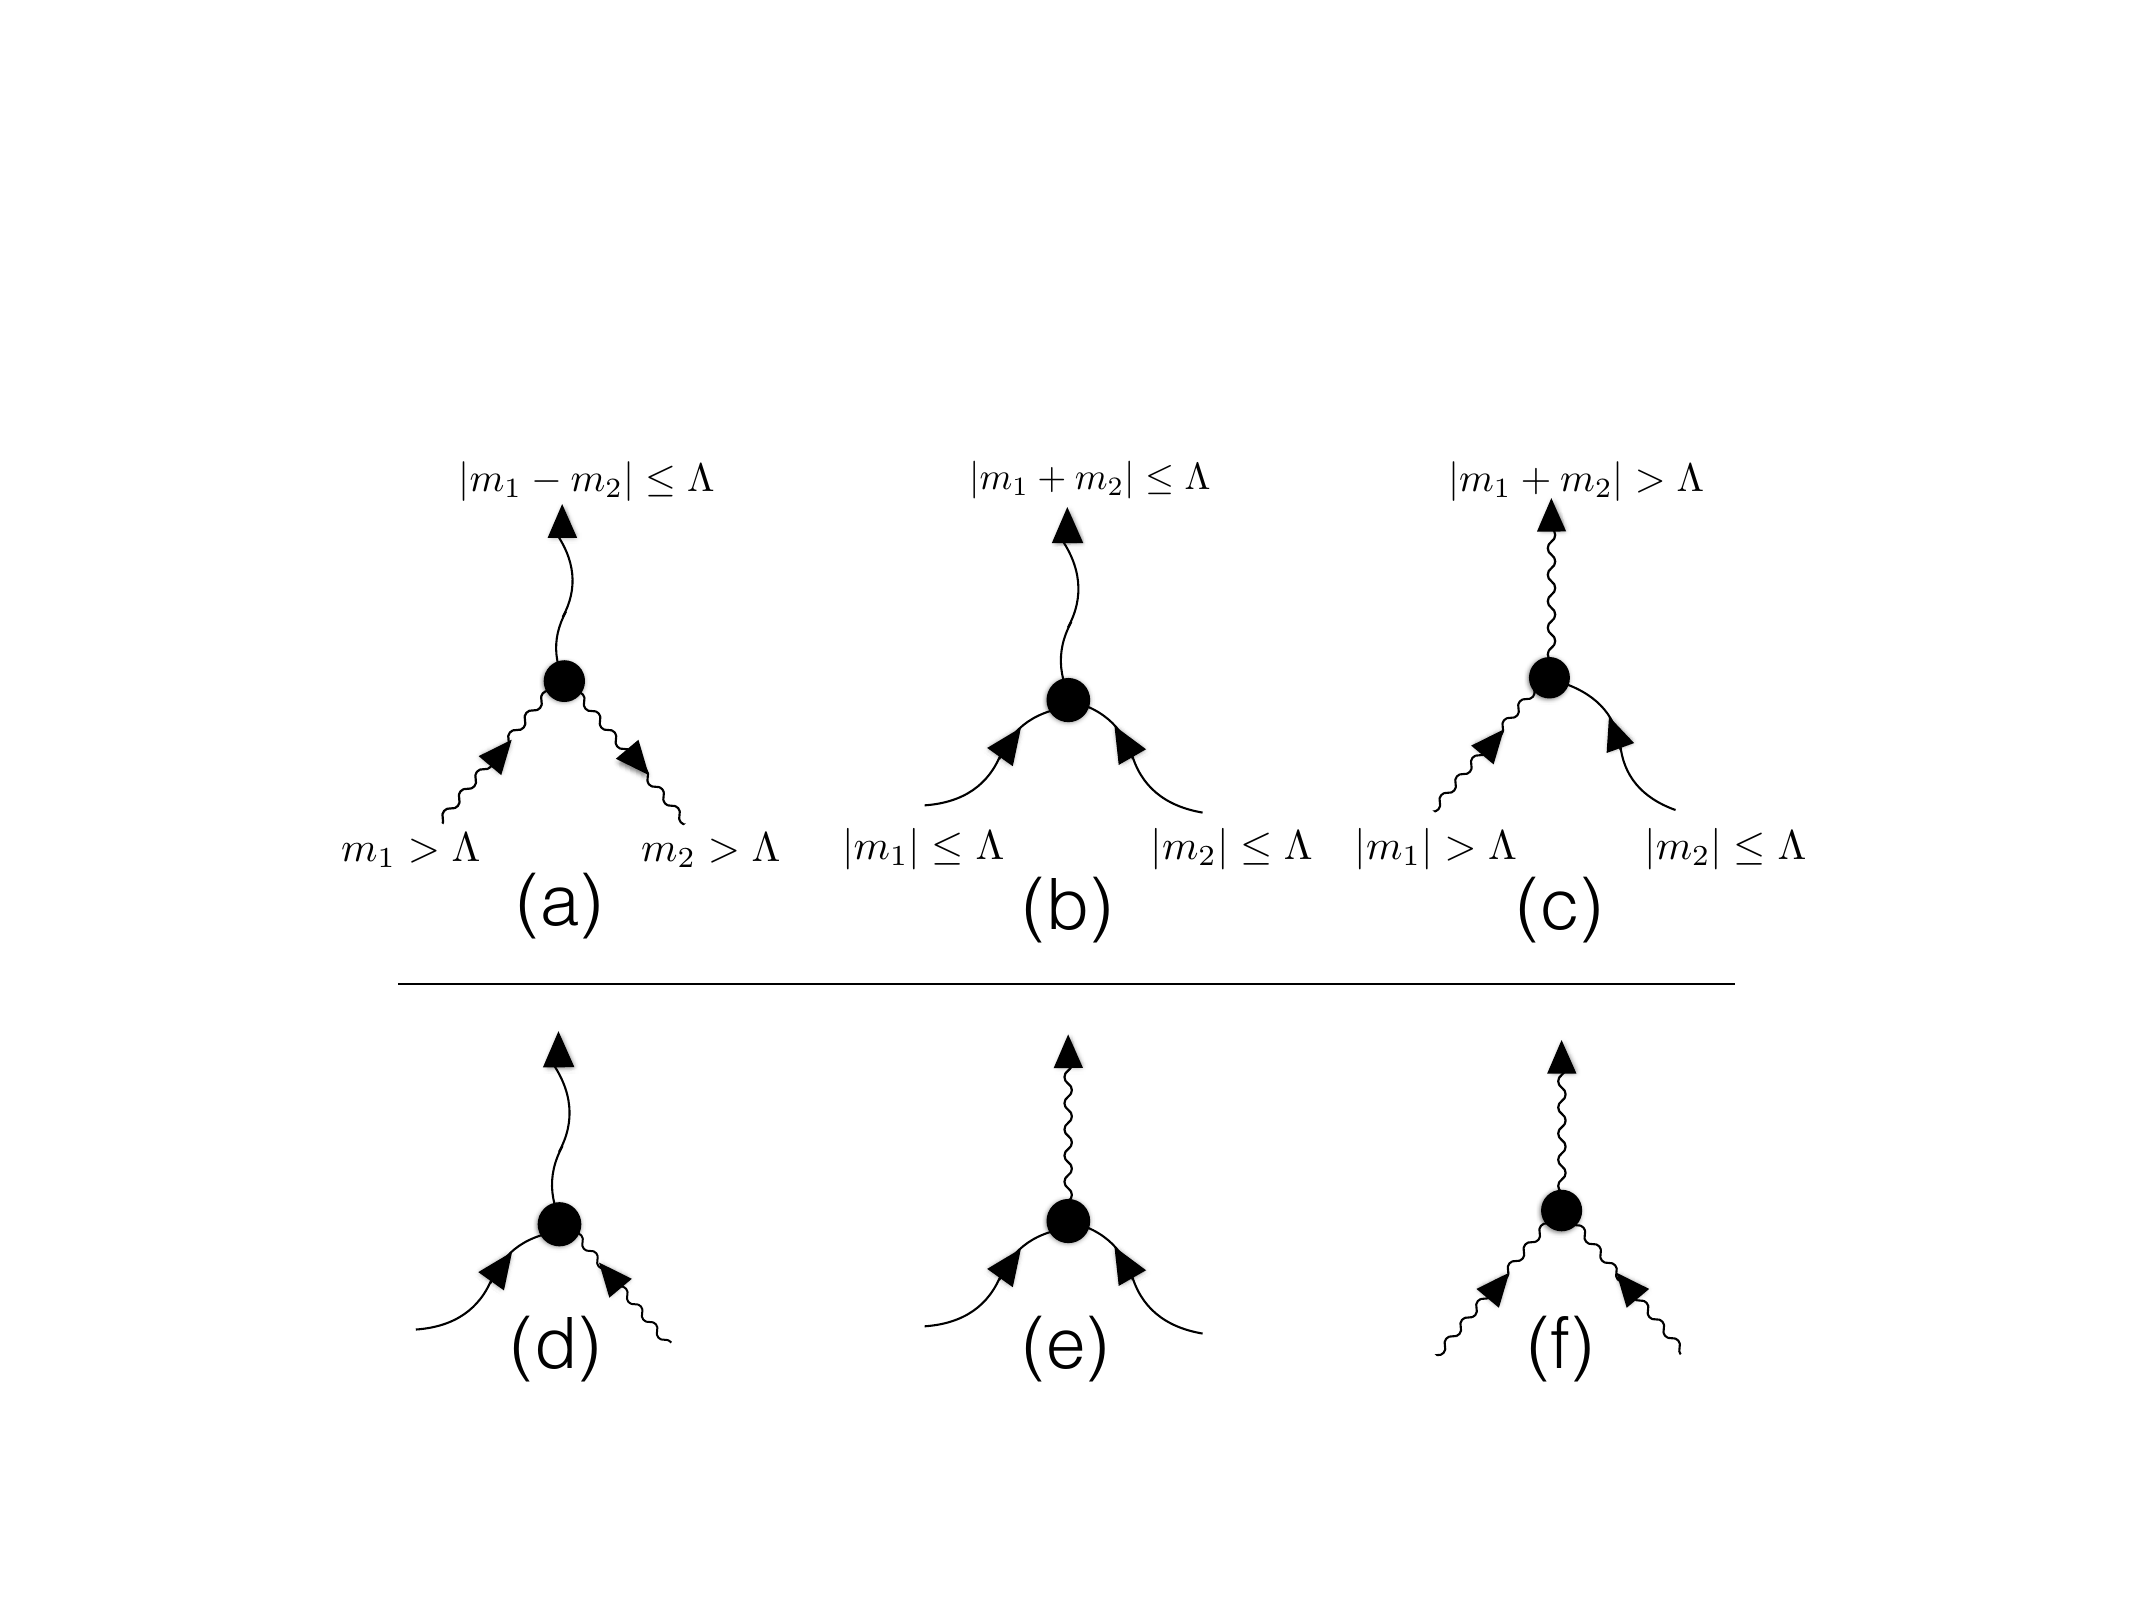 GQL works by limiting non-linear interactions